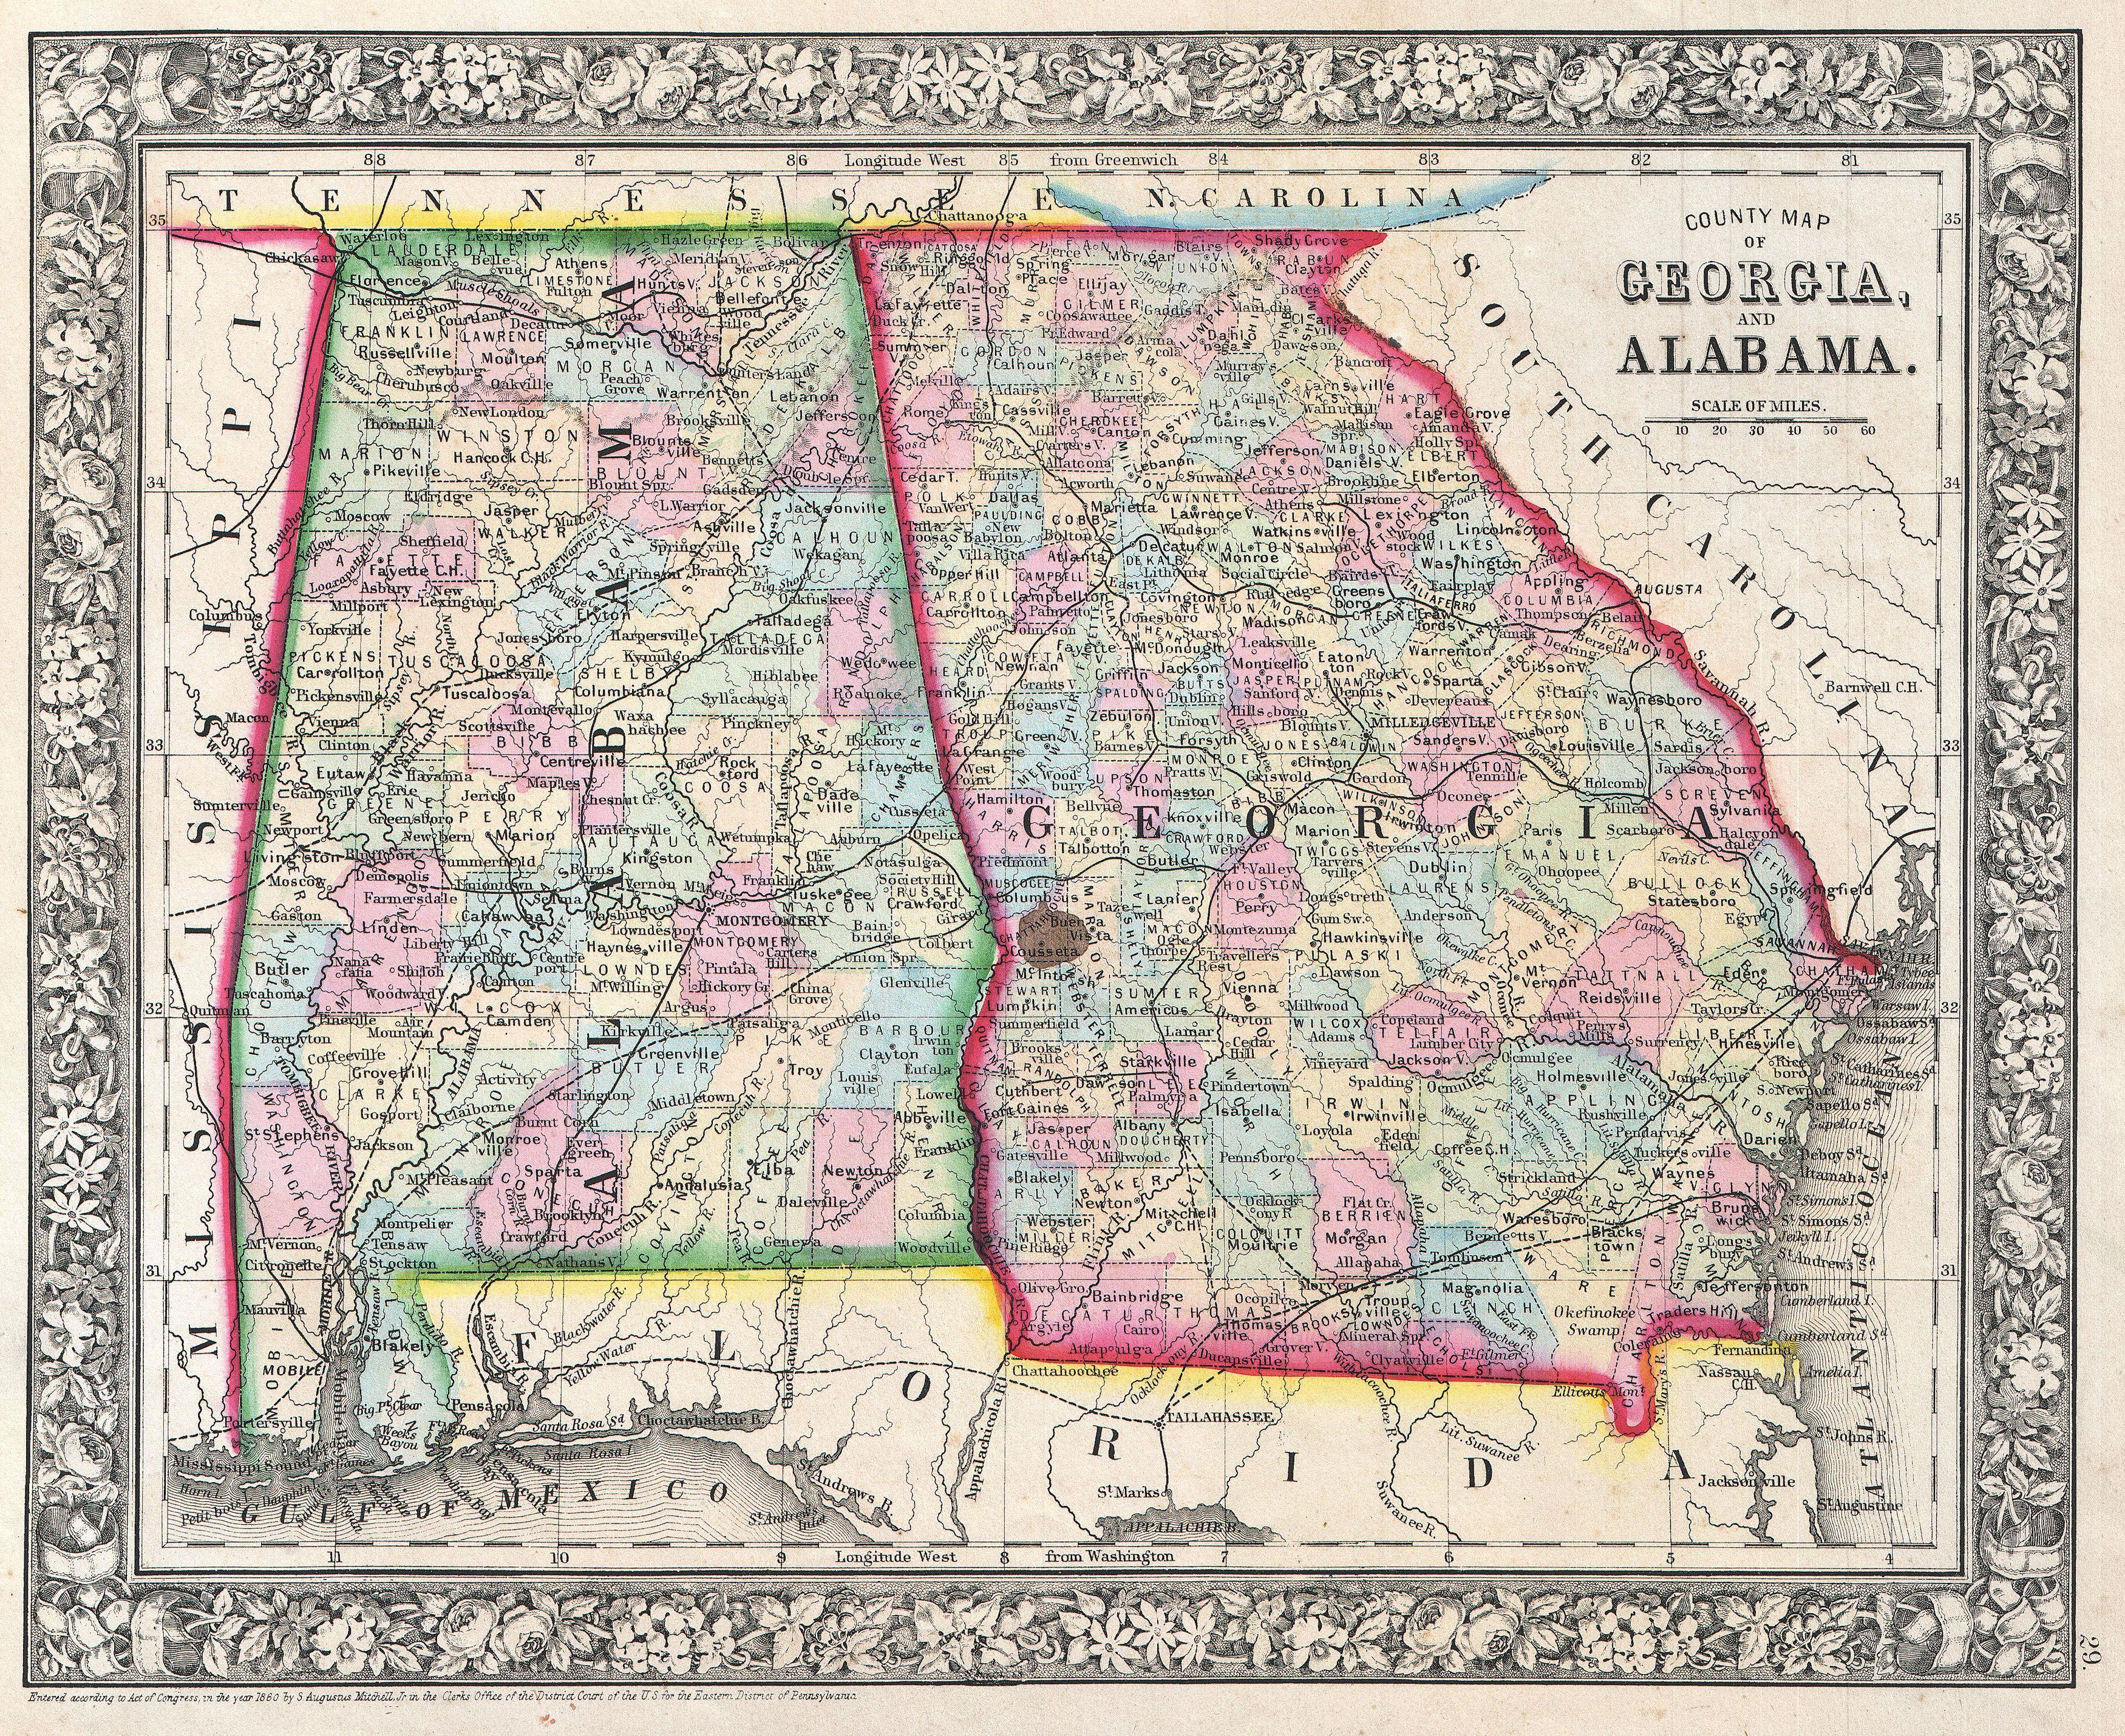 mississippi highway map with File 1864 Mitchell Map Of Georgia And Alabama   Geographicus   Gaal Mitchell 1860 on Tn002 furthermore Vermont Road Map in addition Large Scale Roads And Highways Map Of Minnesota State With National Parks And Cities furthermore World Map 1492 in addition Belize Satellite Image.